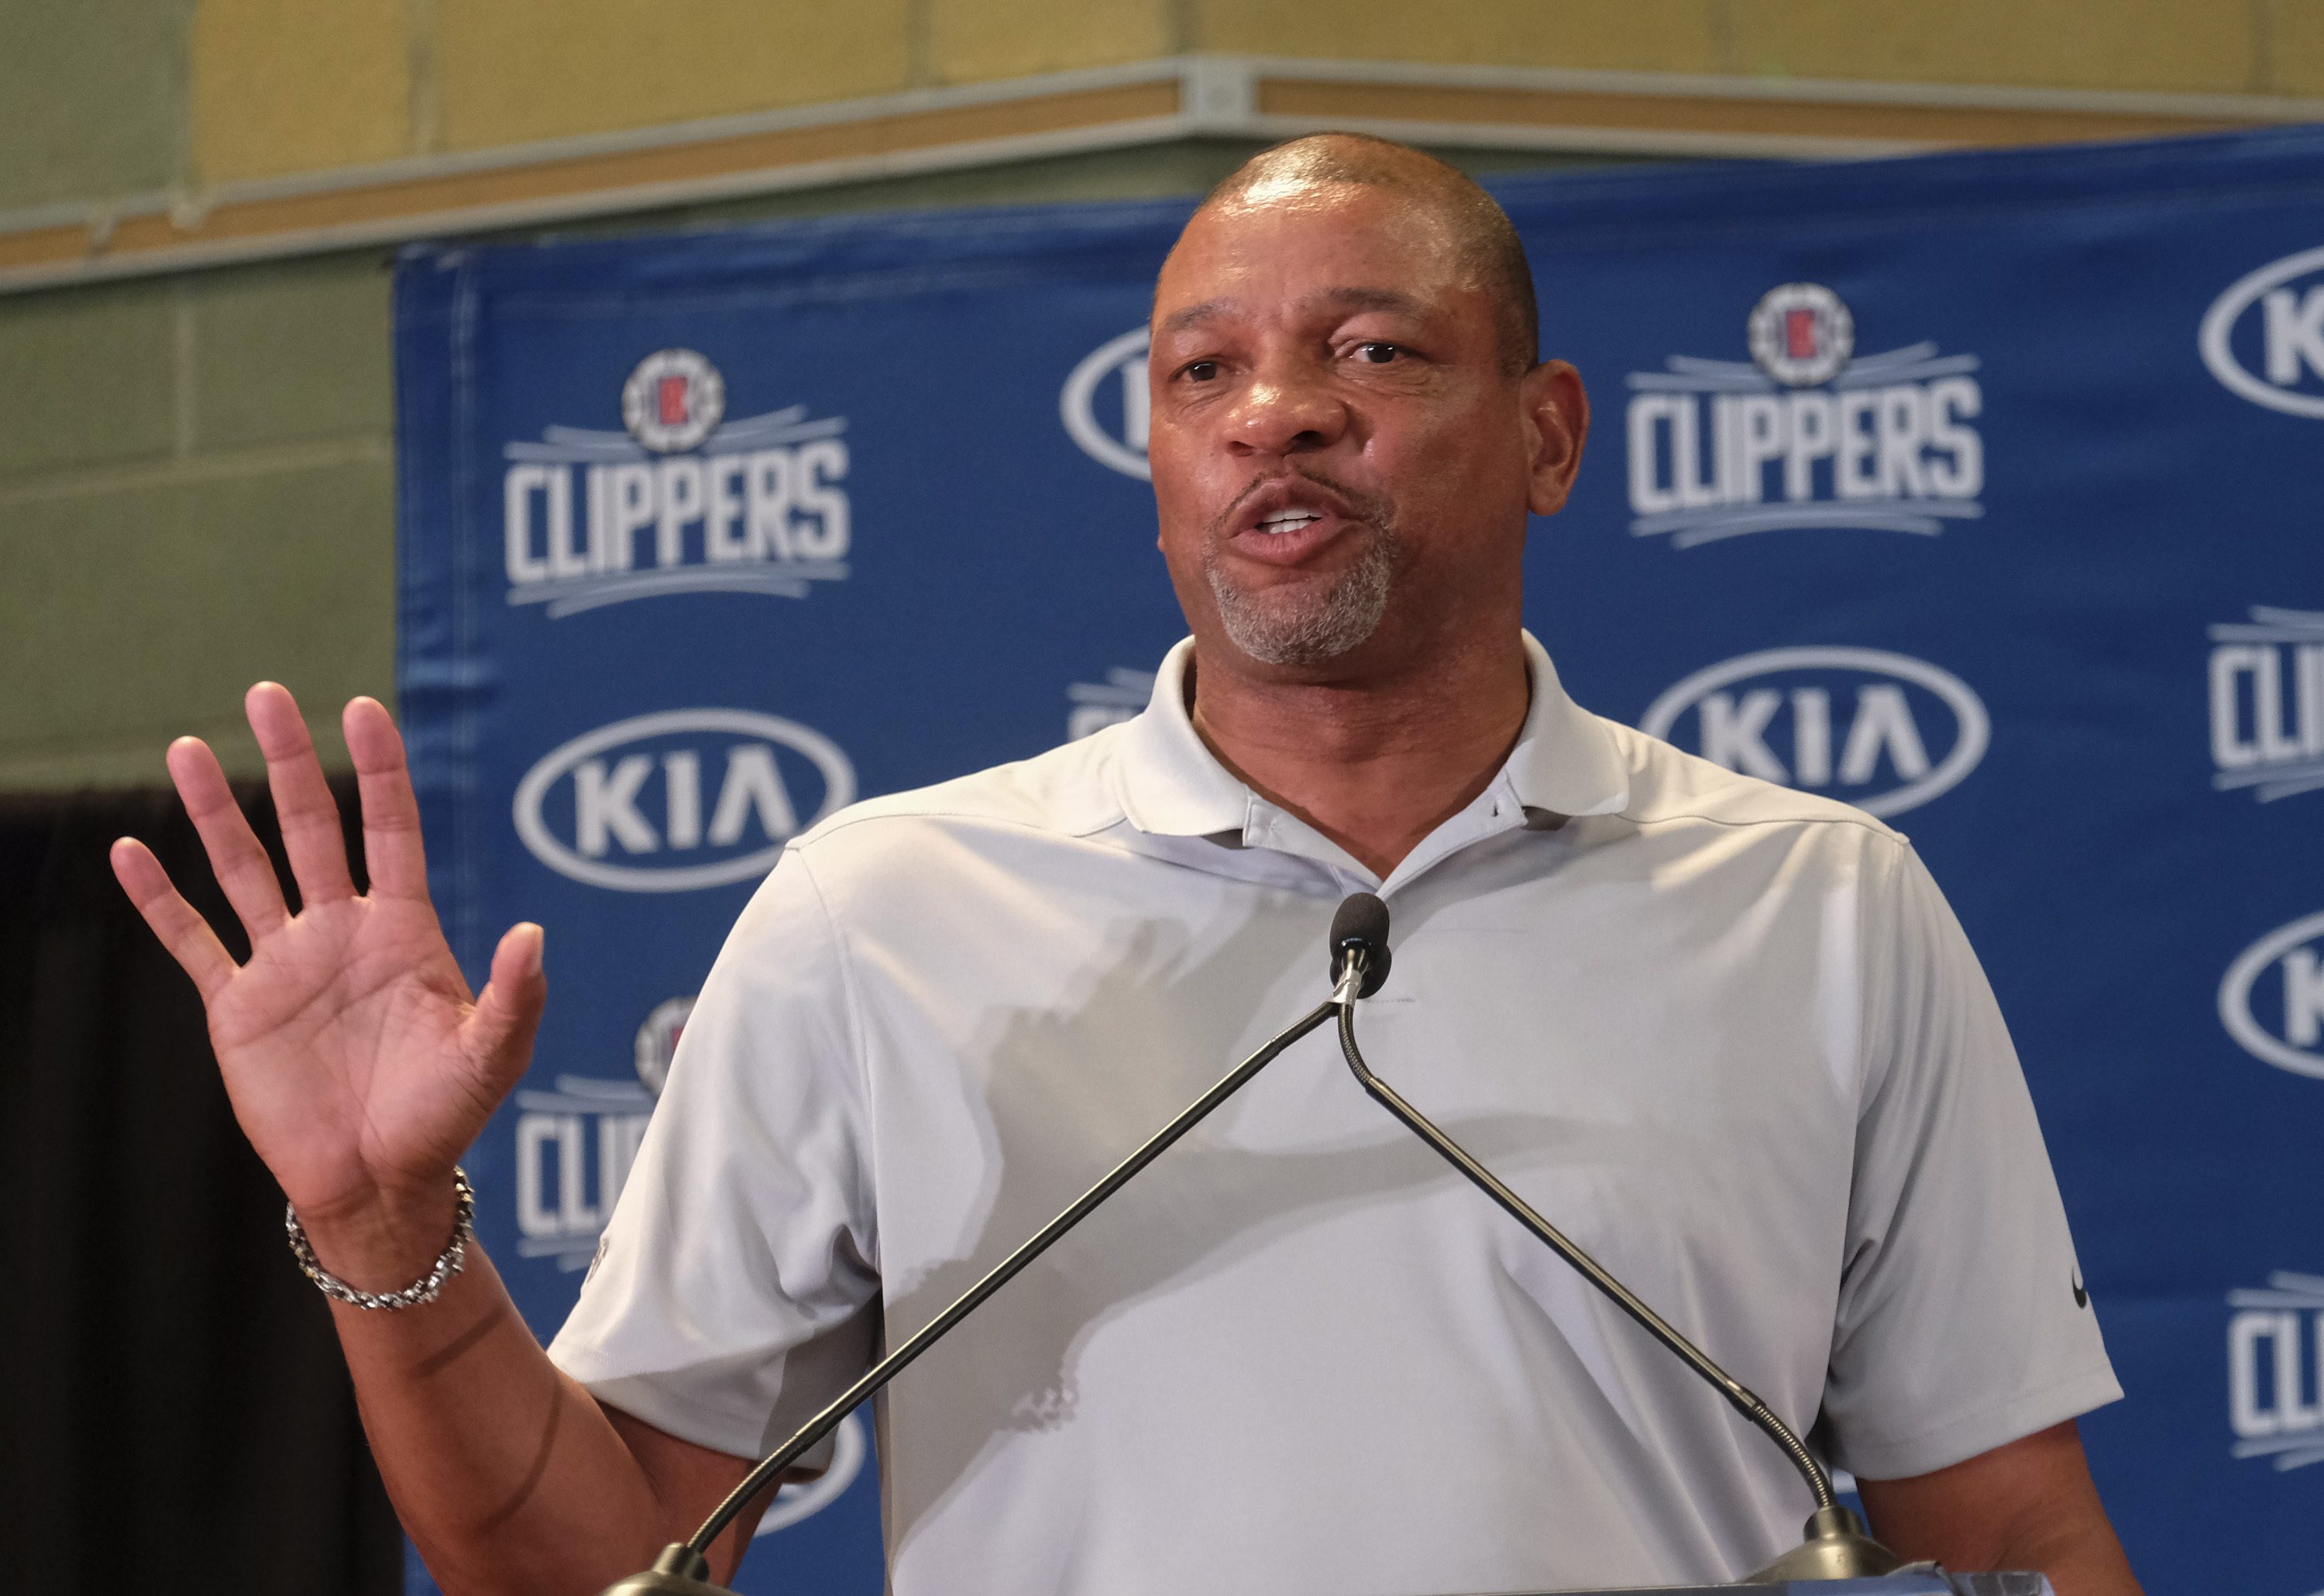 Why Doc Rivers is comfortable with target on Clippers' backs